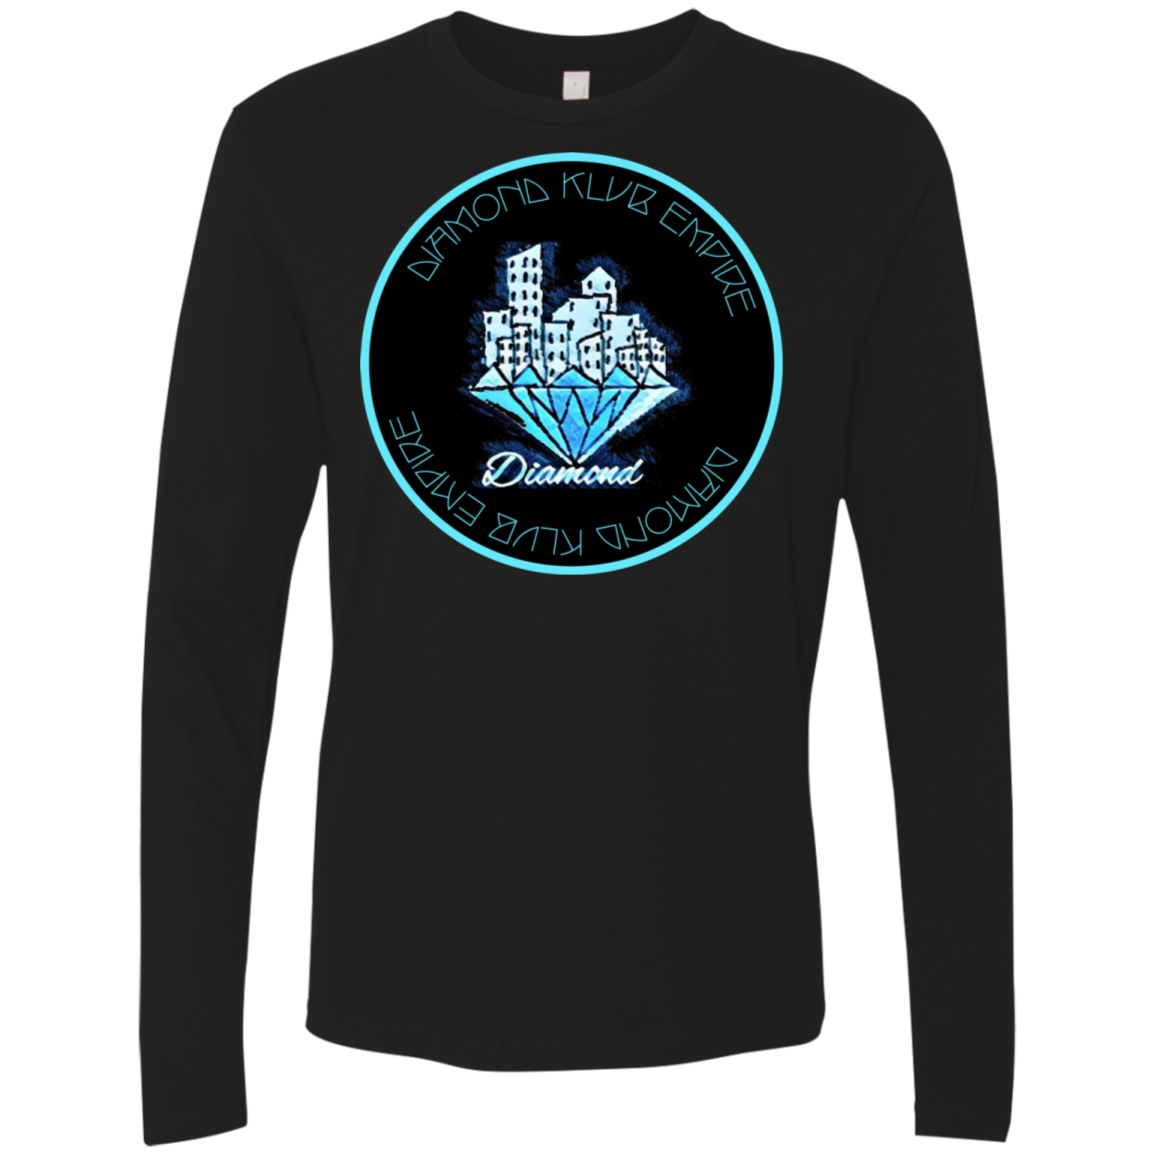 Diamond Klub Empire Next Level Men's Premium LS